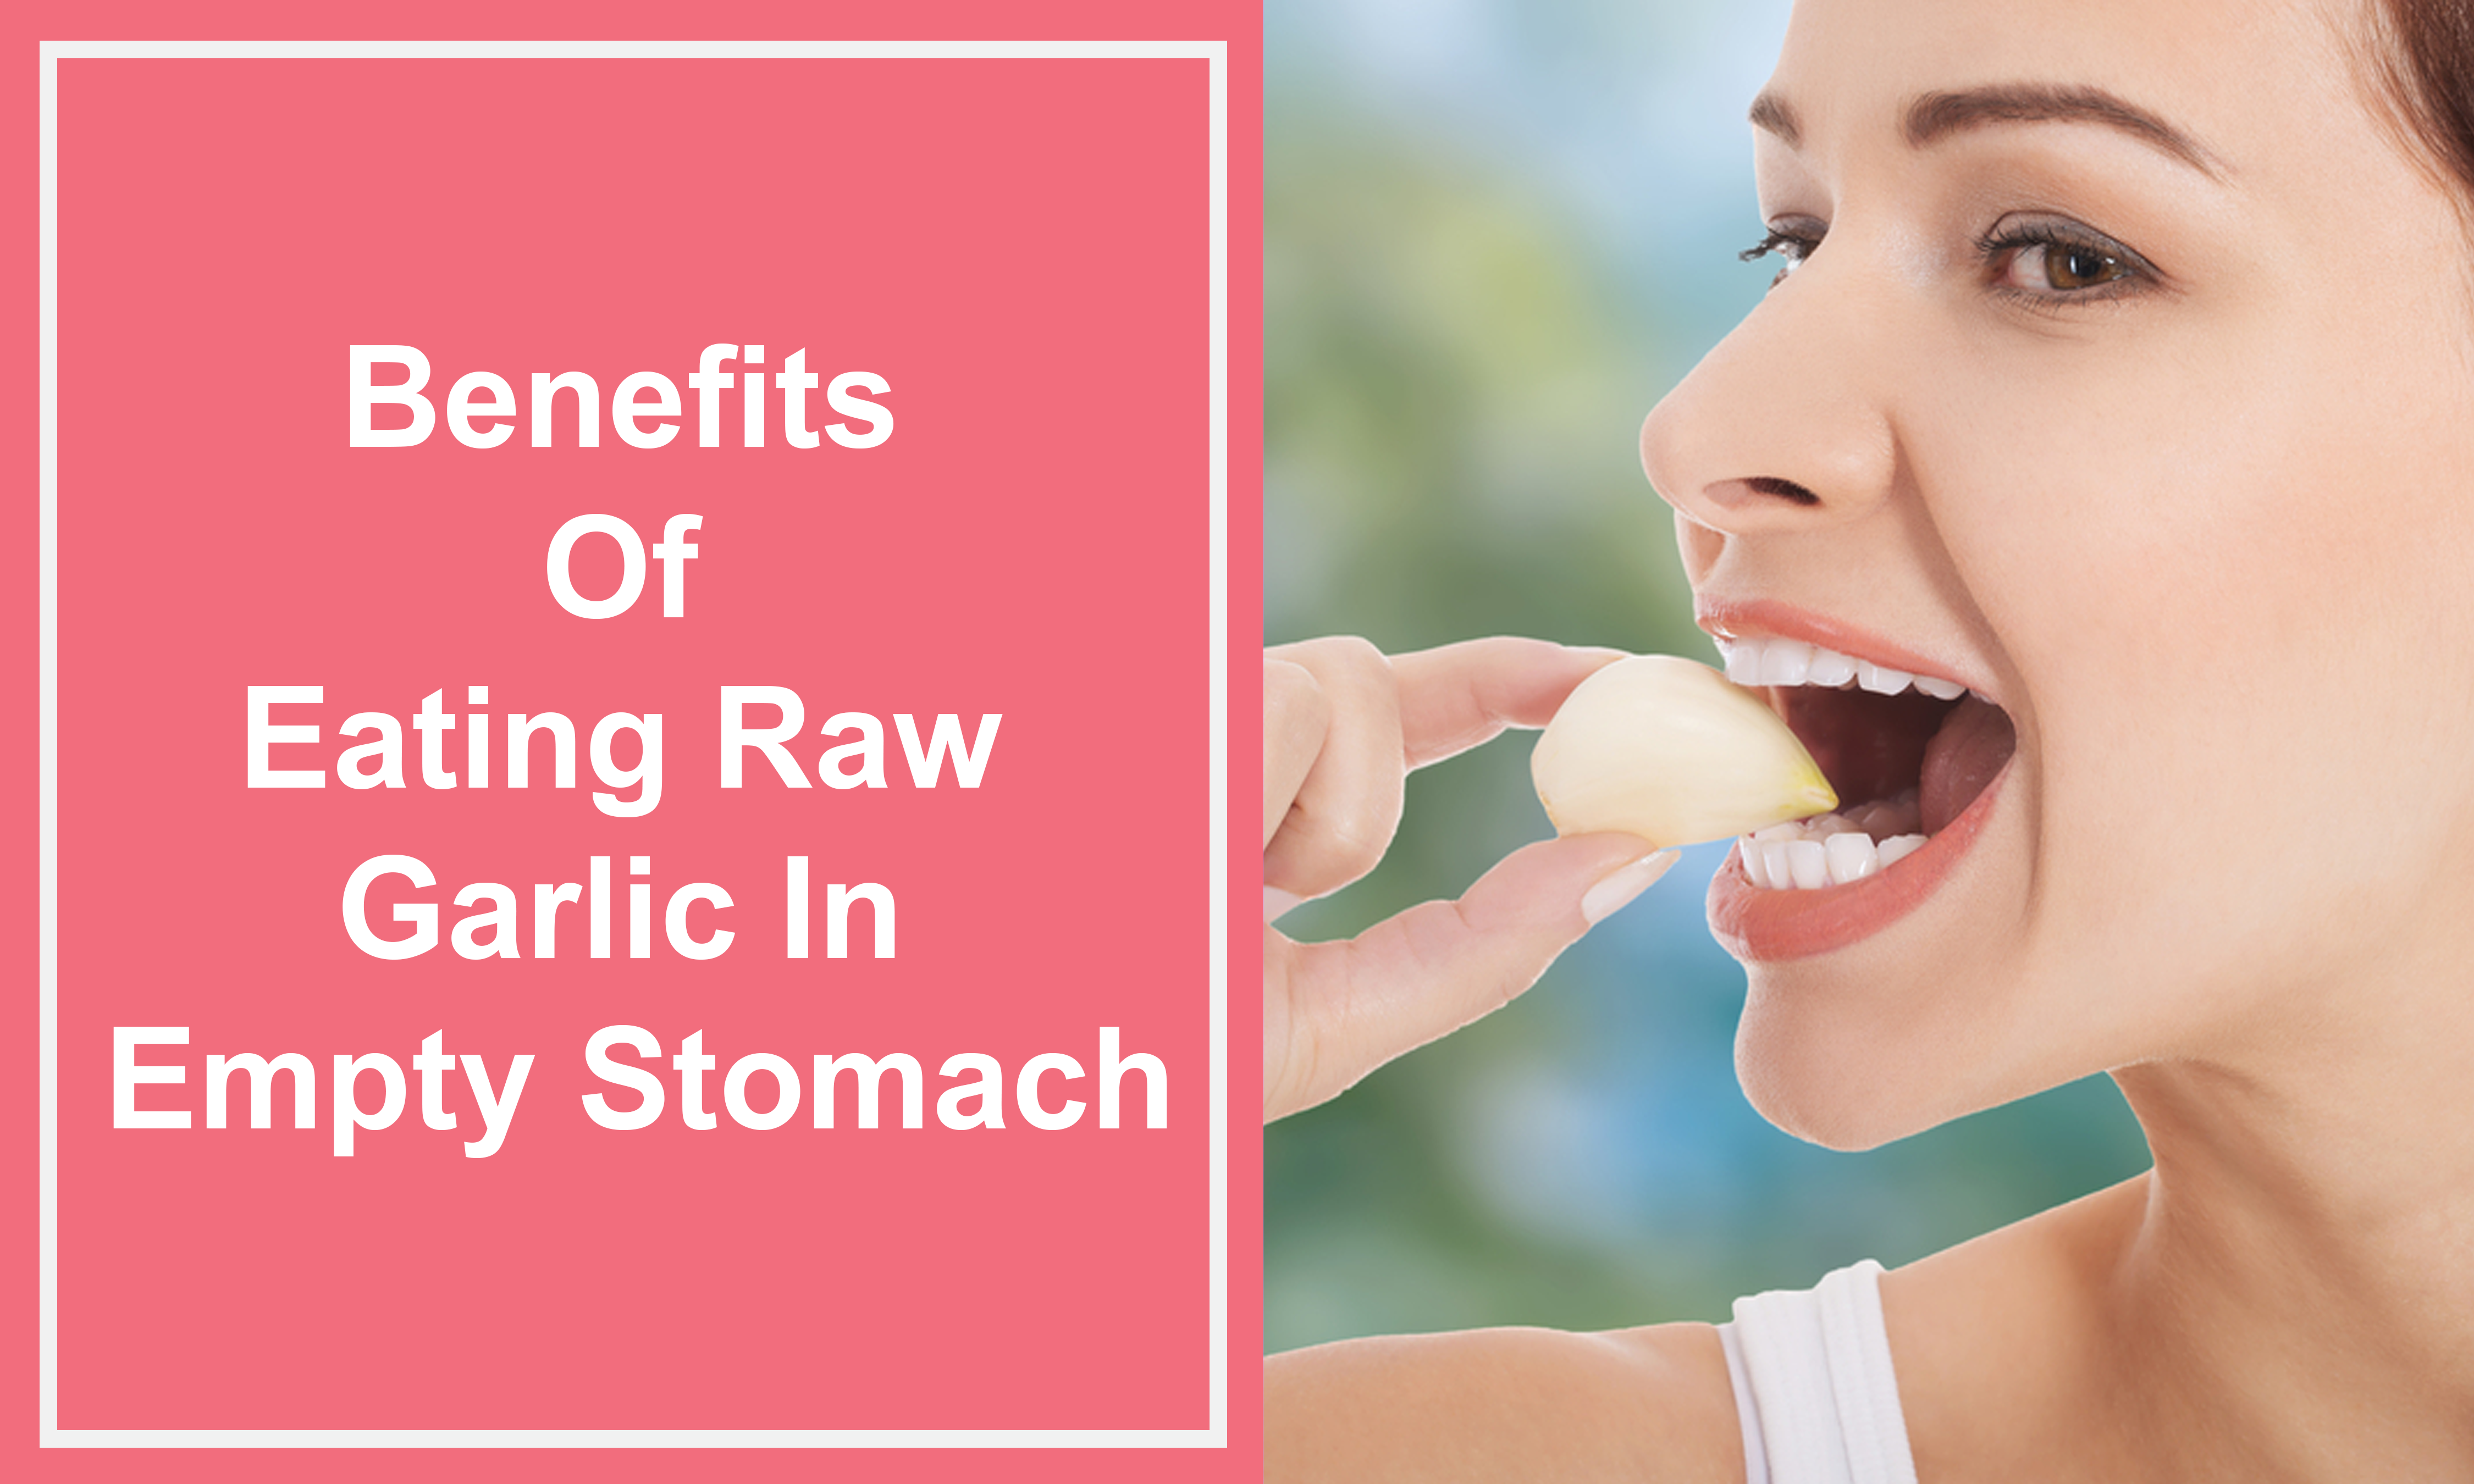 Benefits Of Eating Raw Garlic In Empty Stomach